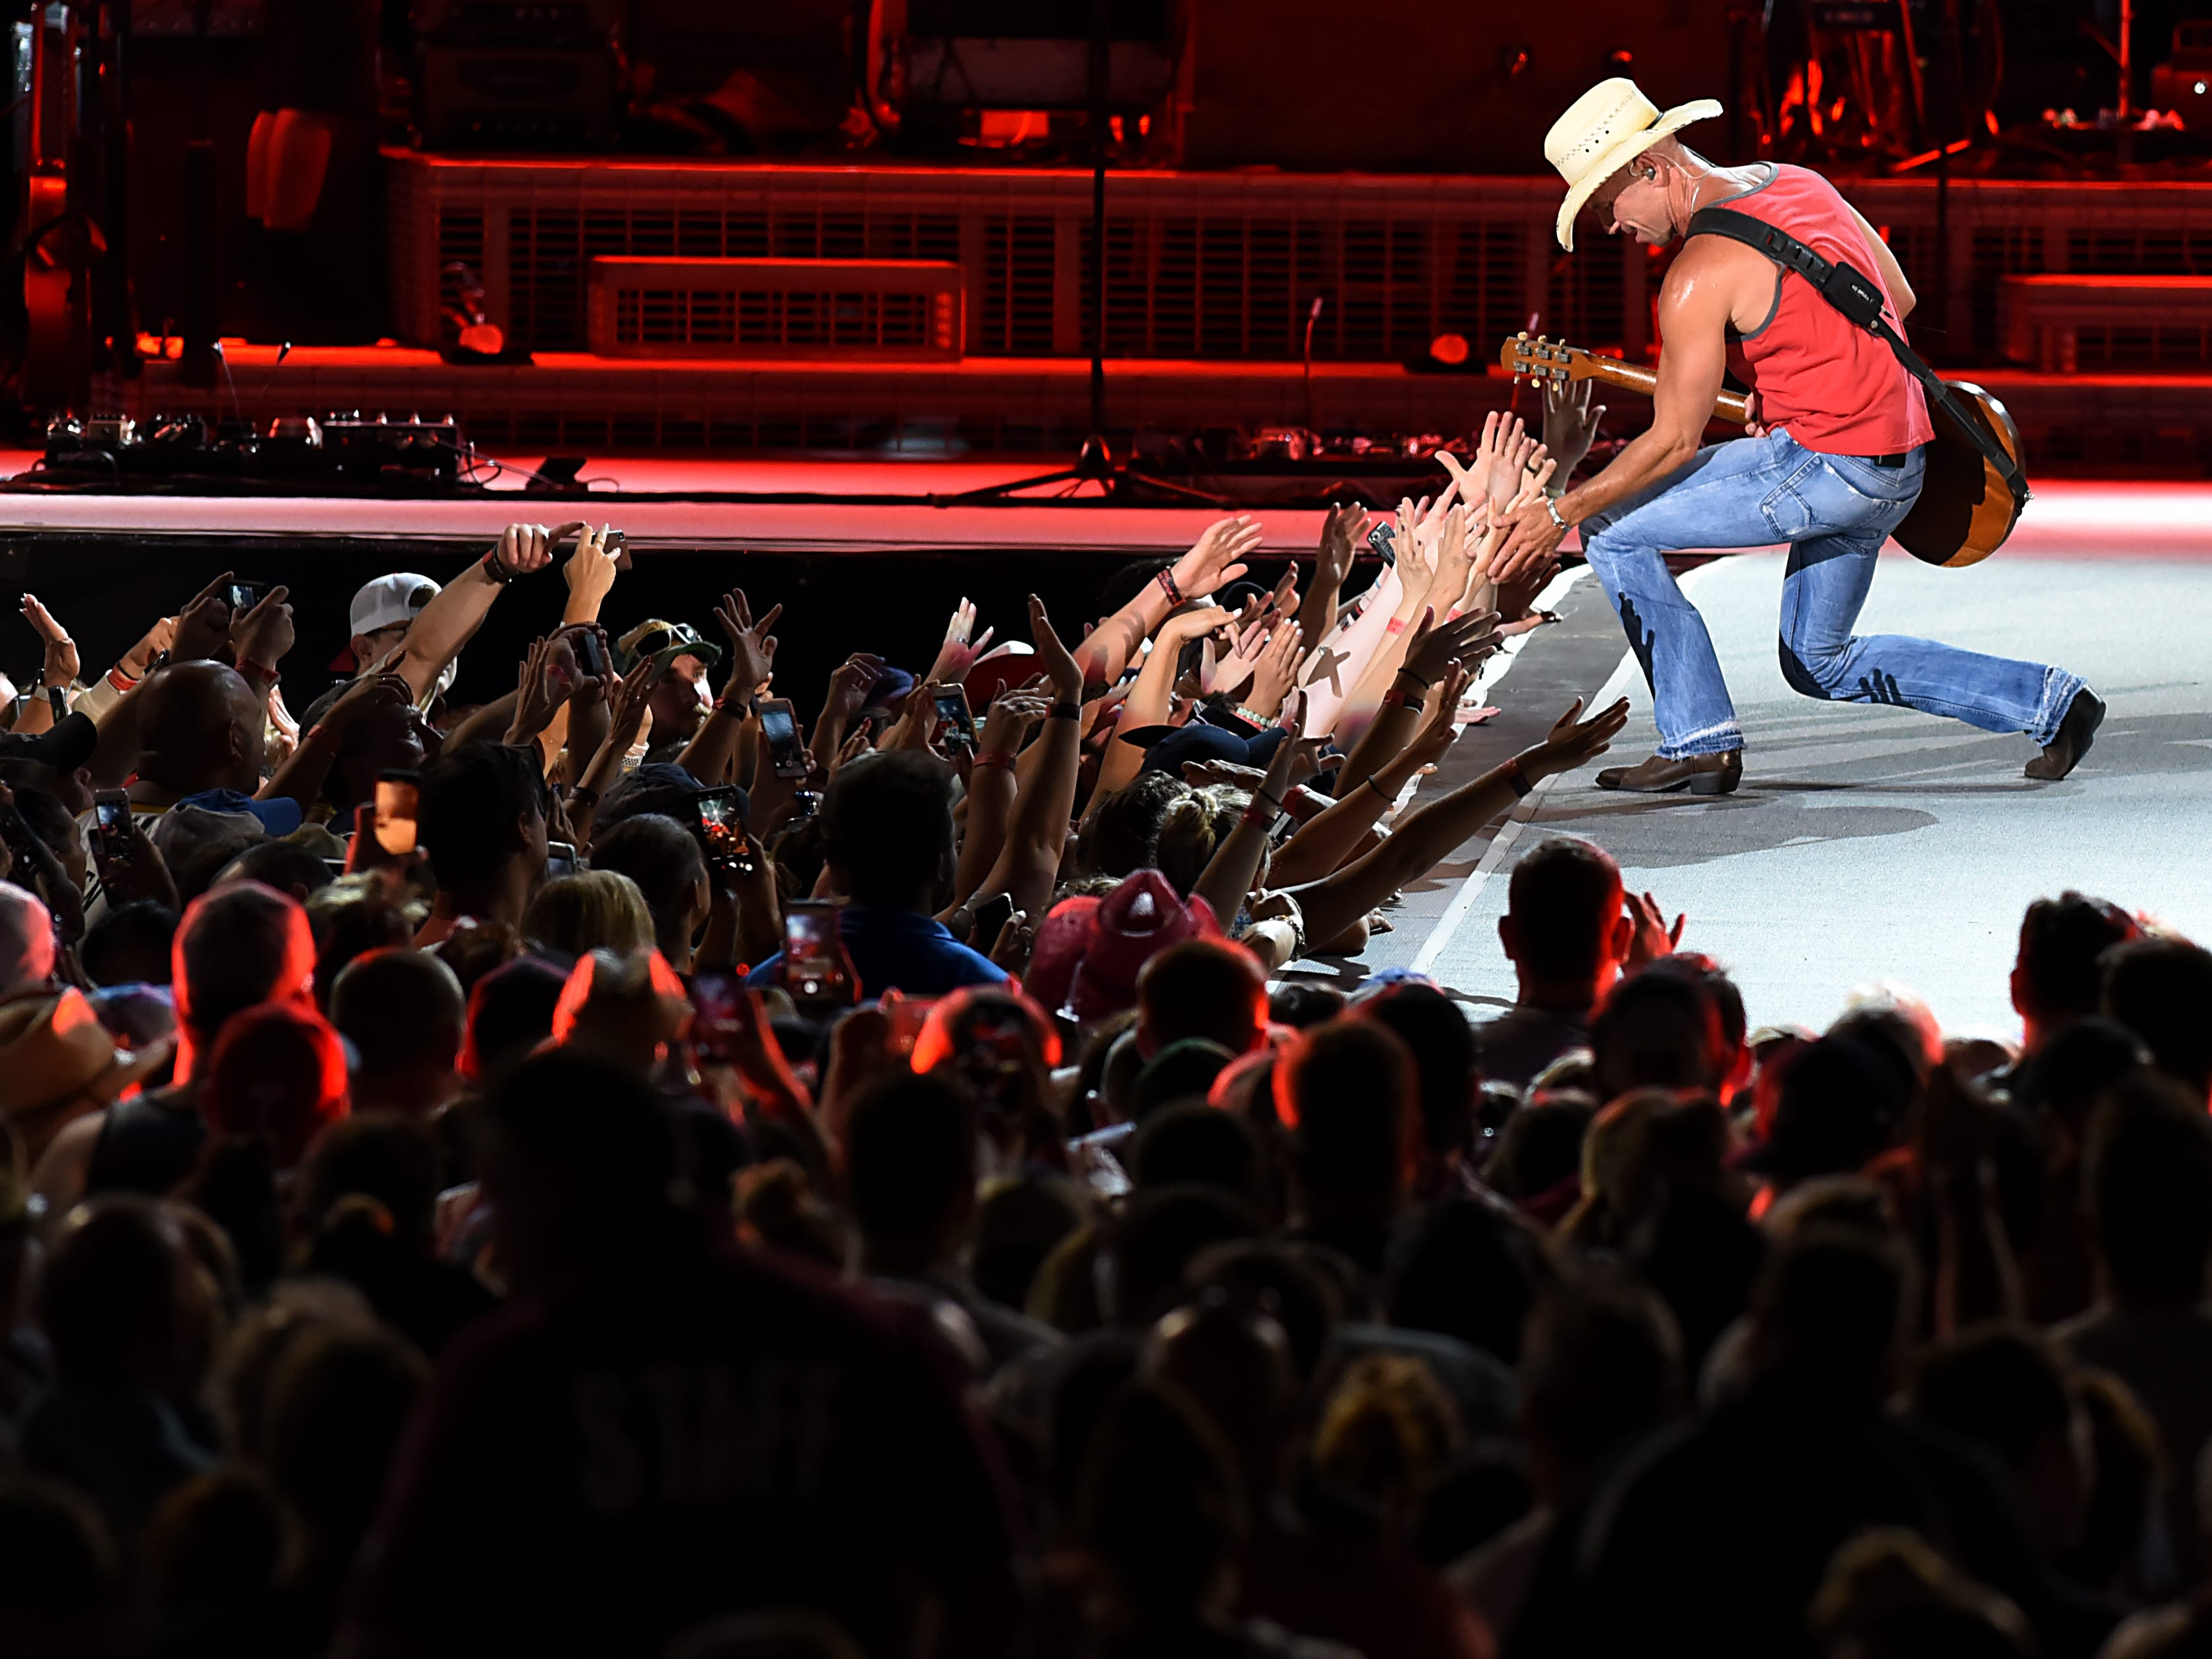 Kenny Chesney greets fans during a concert at MetLife stadium in East Rutherford on Saturday August 18, 2018.